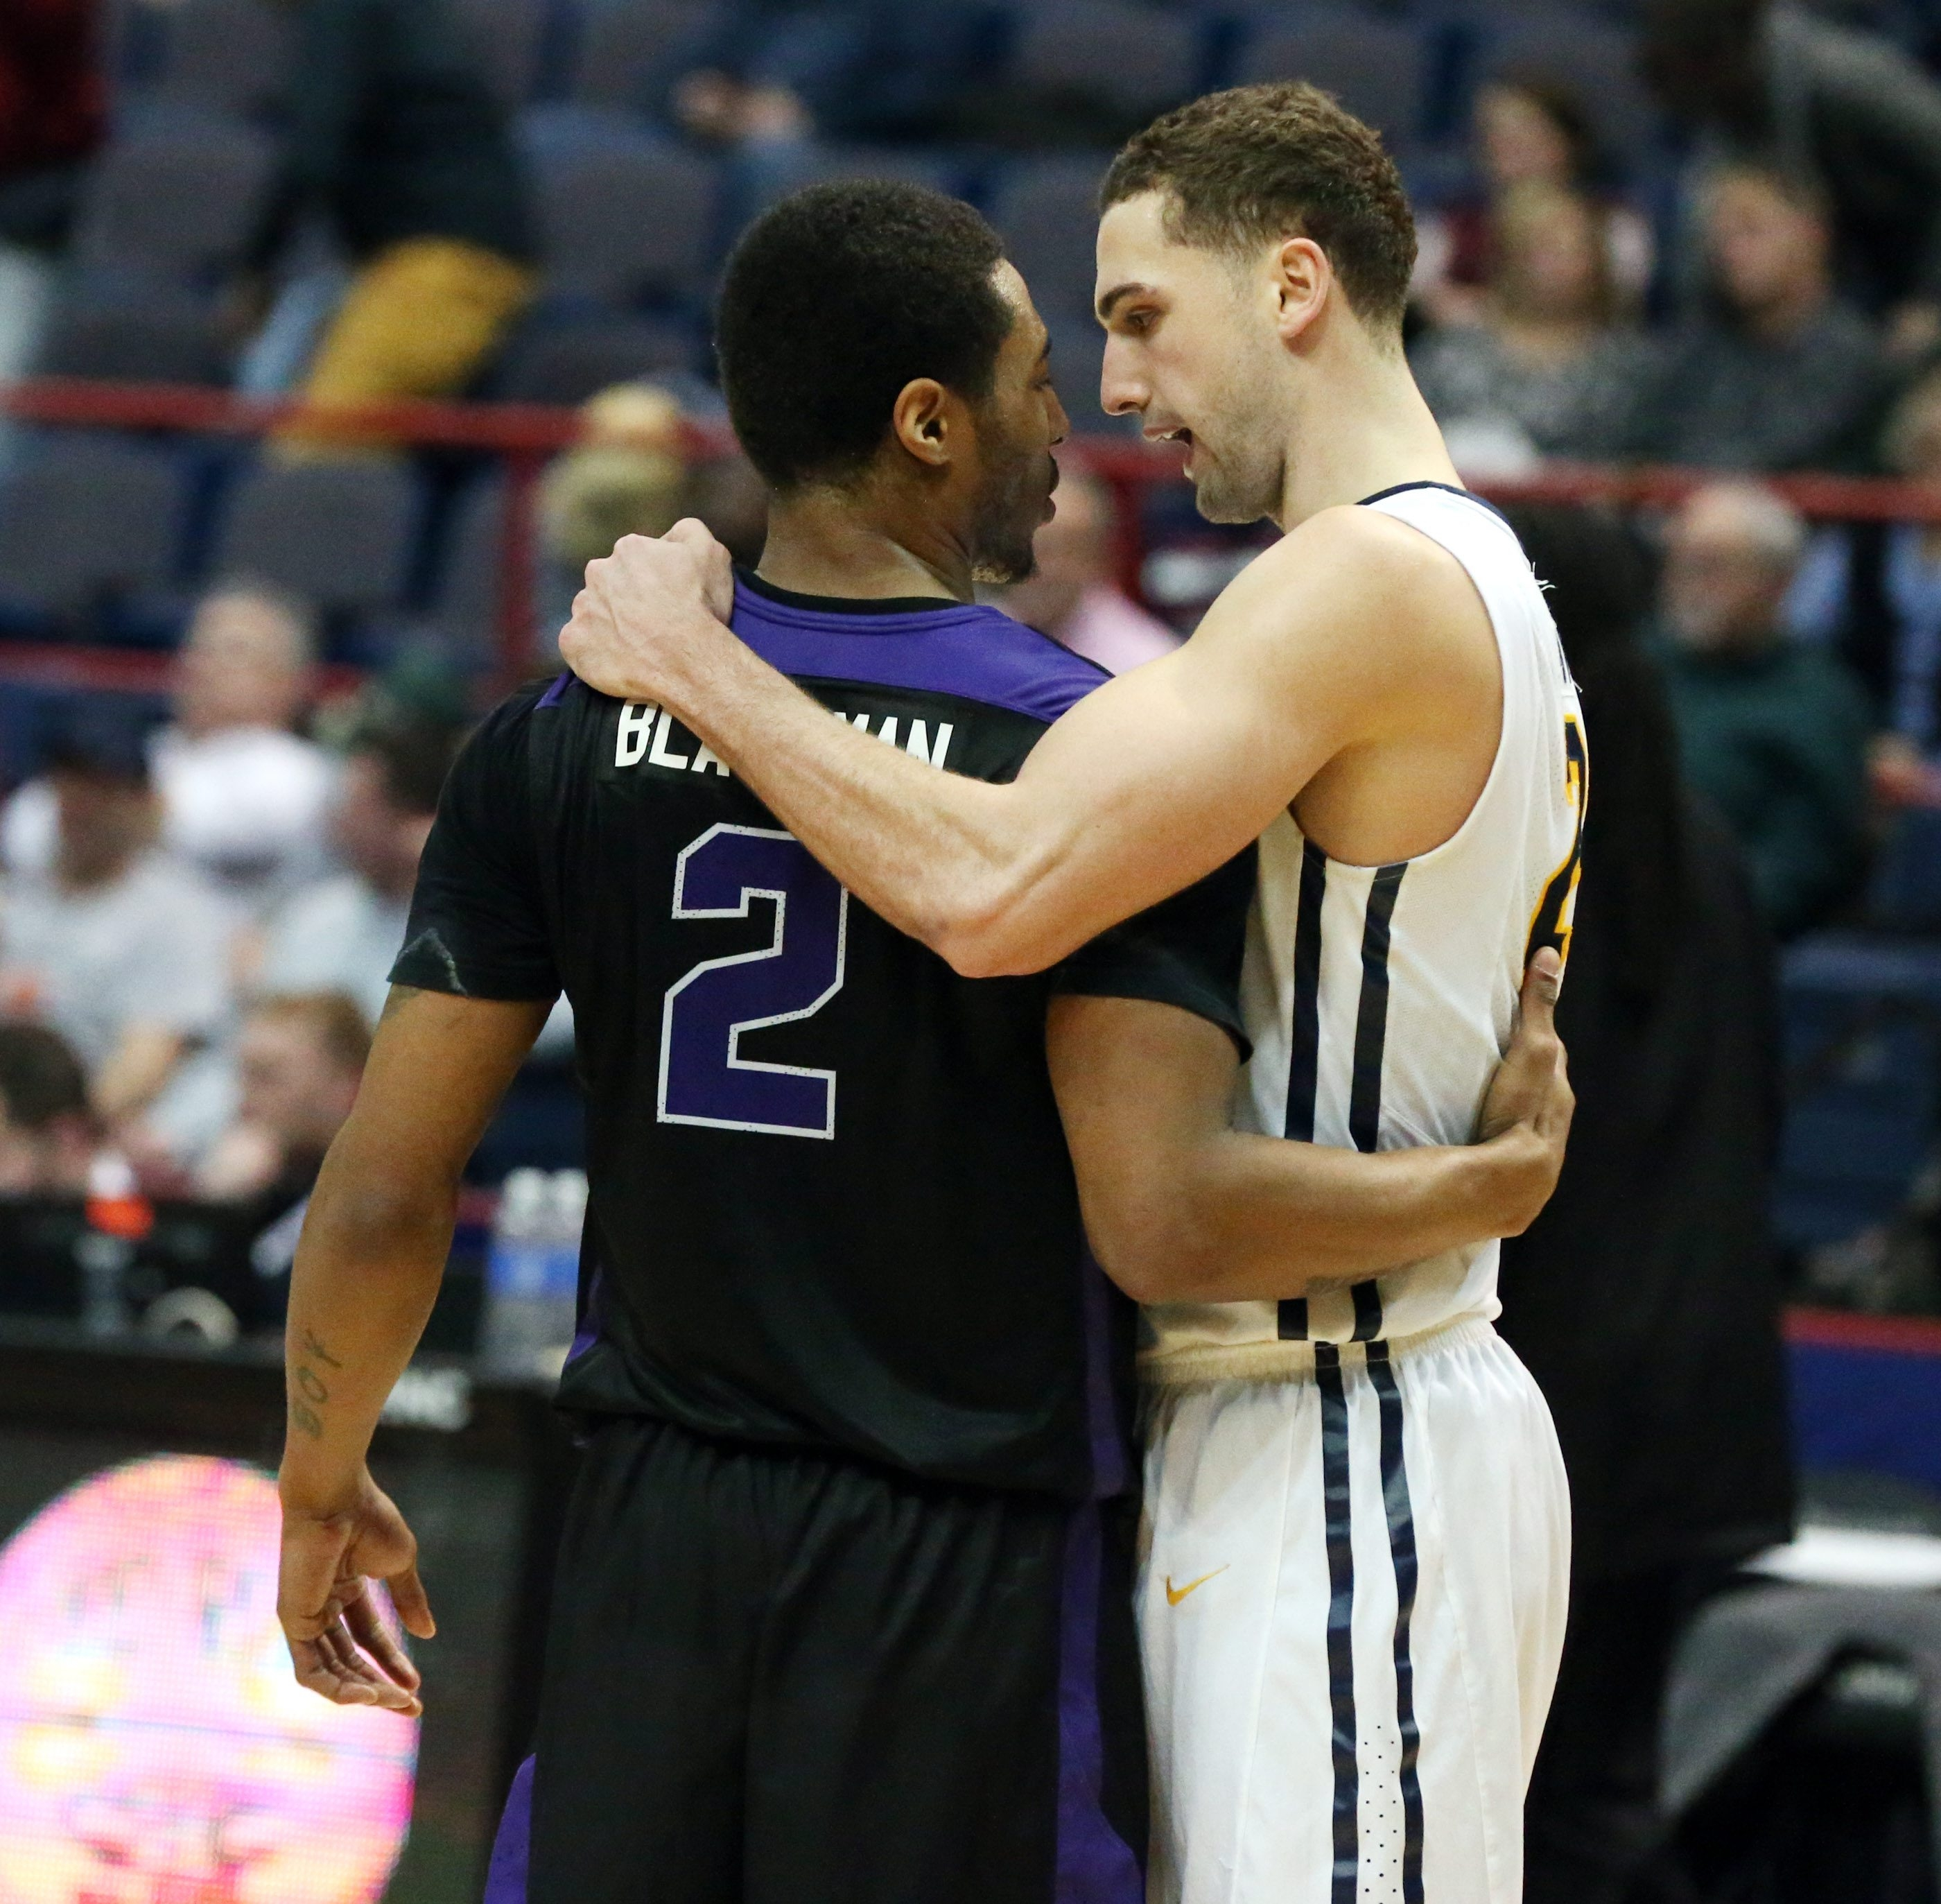 Niagara's Emile Blackman and Phil Valenti hug after the Griffs' 102-97 victory at the MAAC Tournament.